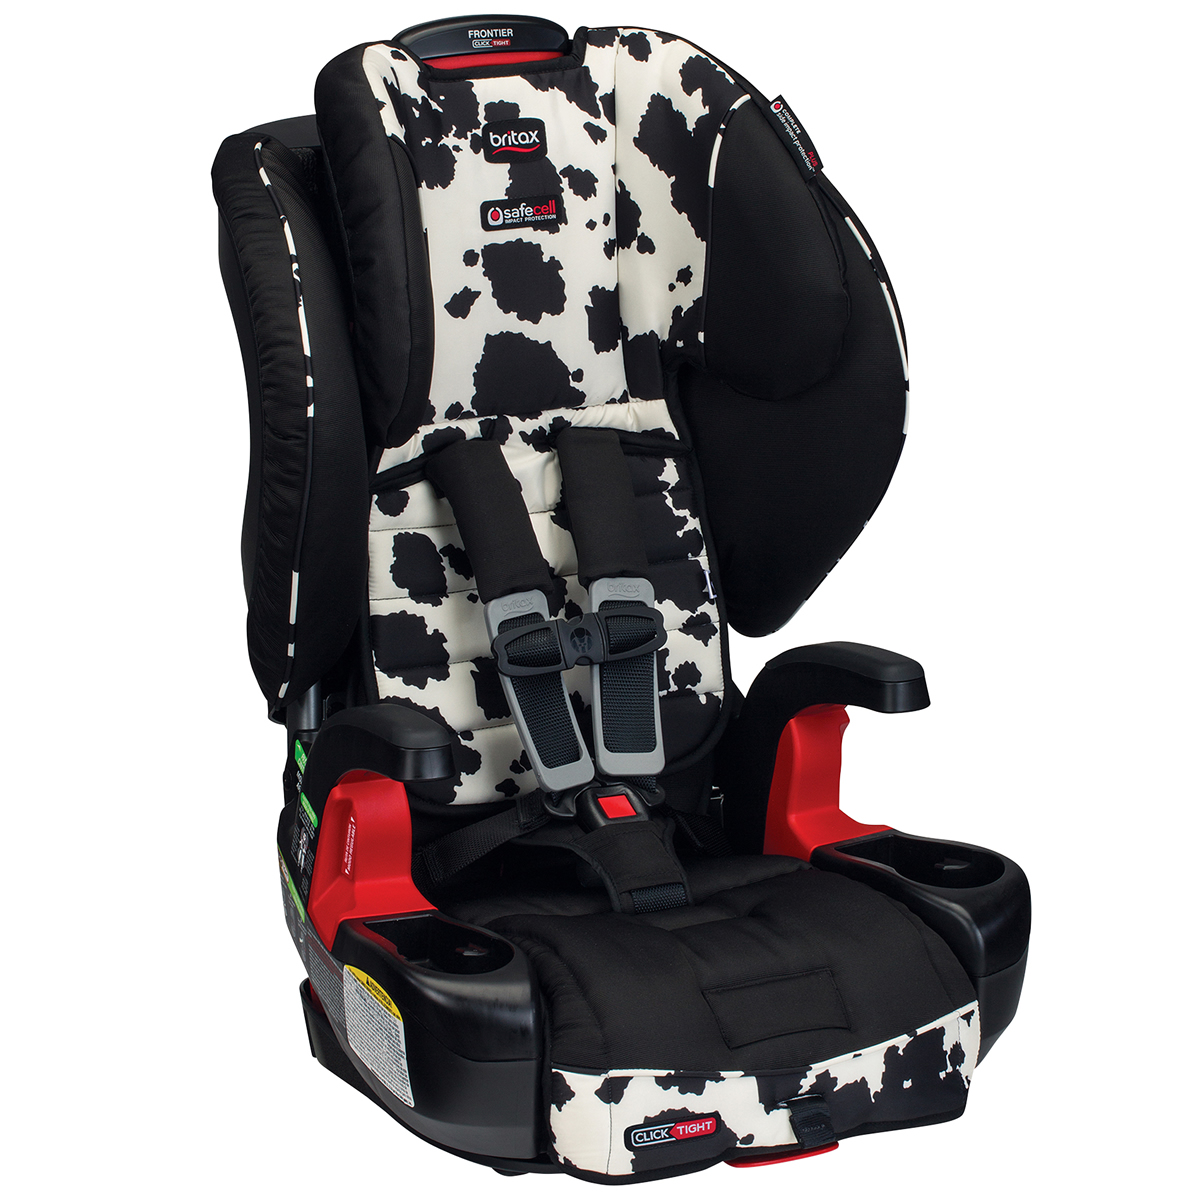 Britax Frontier ClickTight Harness Booster Car Seat - Cow...